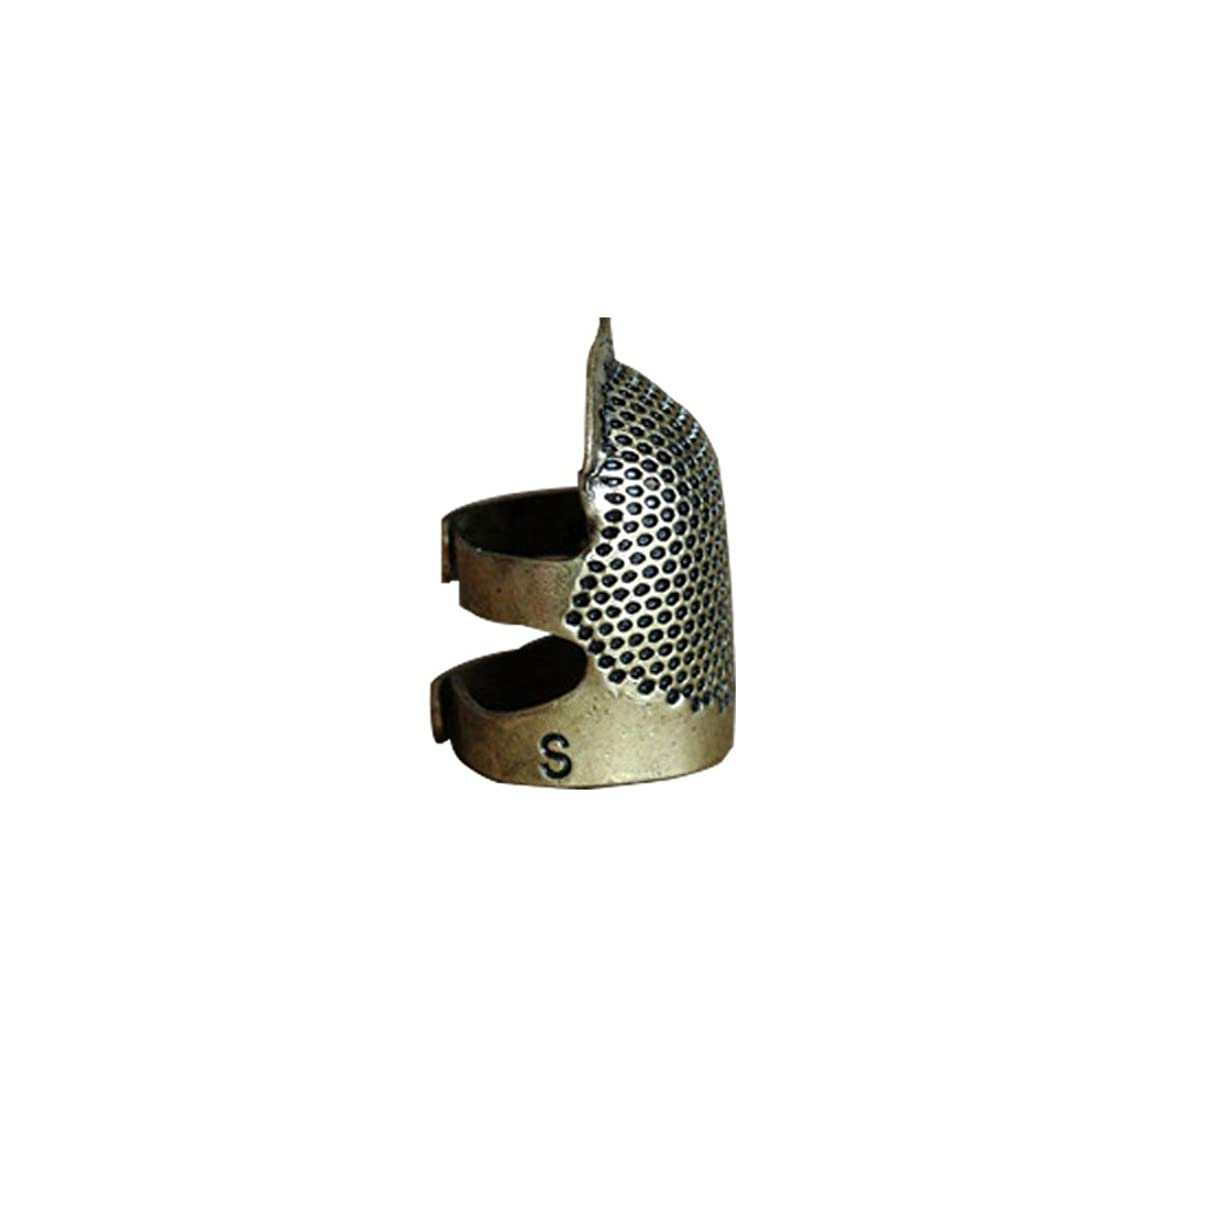 LGEGE Antique Bronze Toned Vintage DIY Crafts Metal Sewing Thimble Finger Thimble Protector Shield, Helmet Shape Thimble Protector, Size S, 1 Pcs hi69384420370